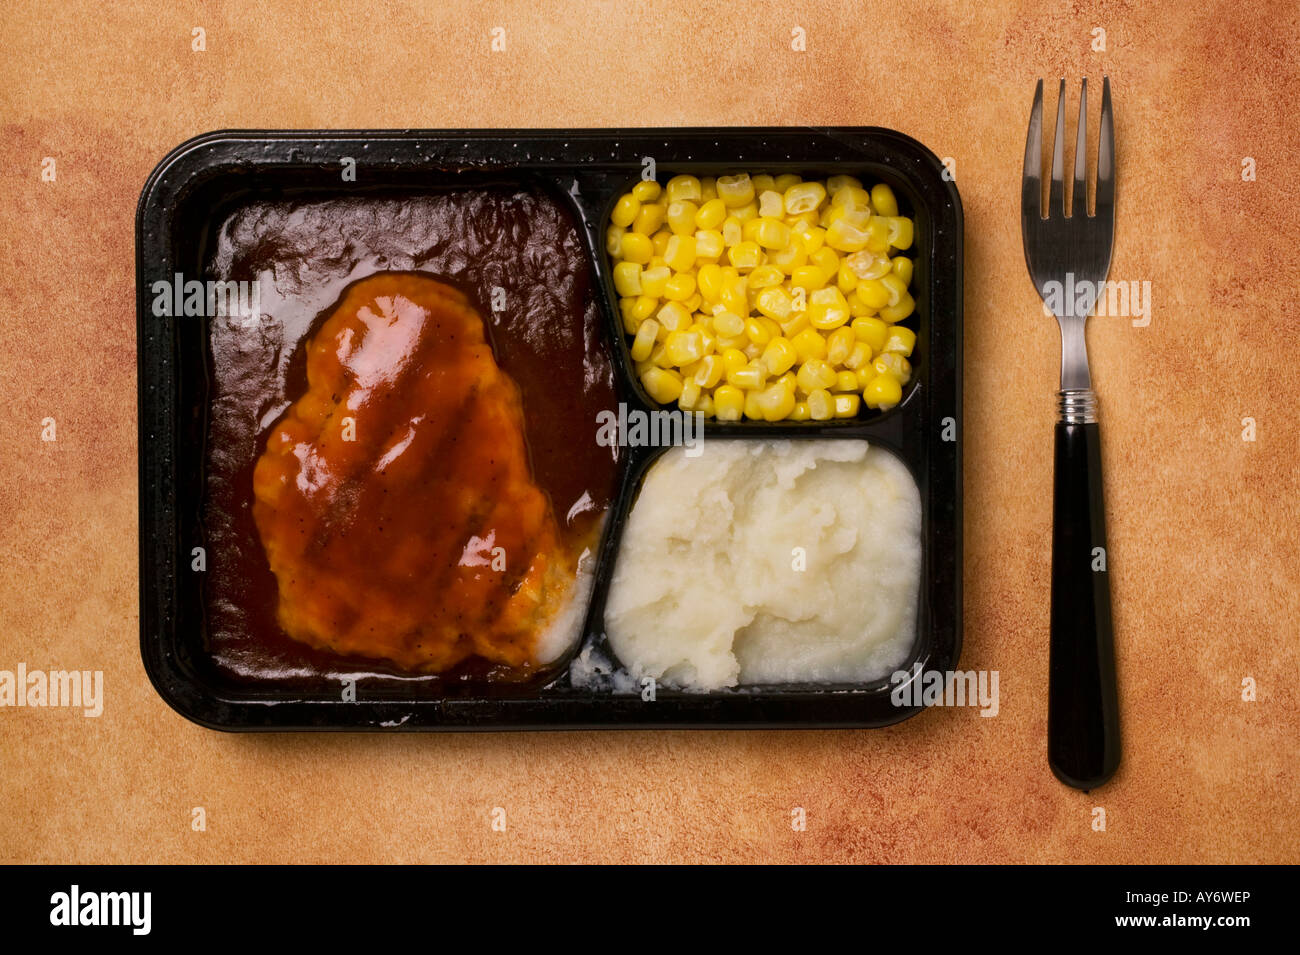 TV dinner with fork - Stock Image